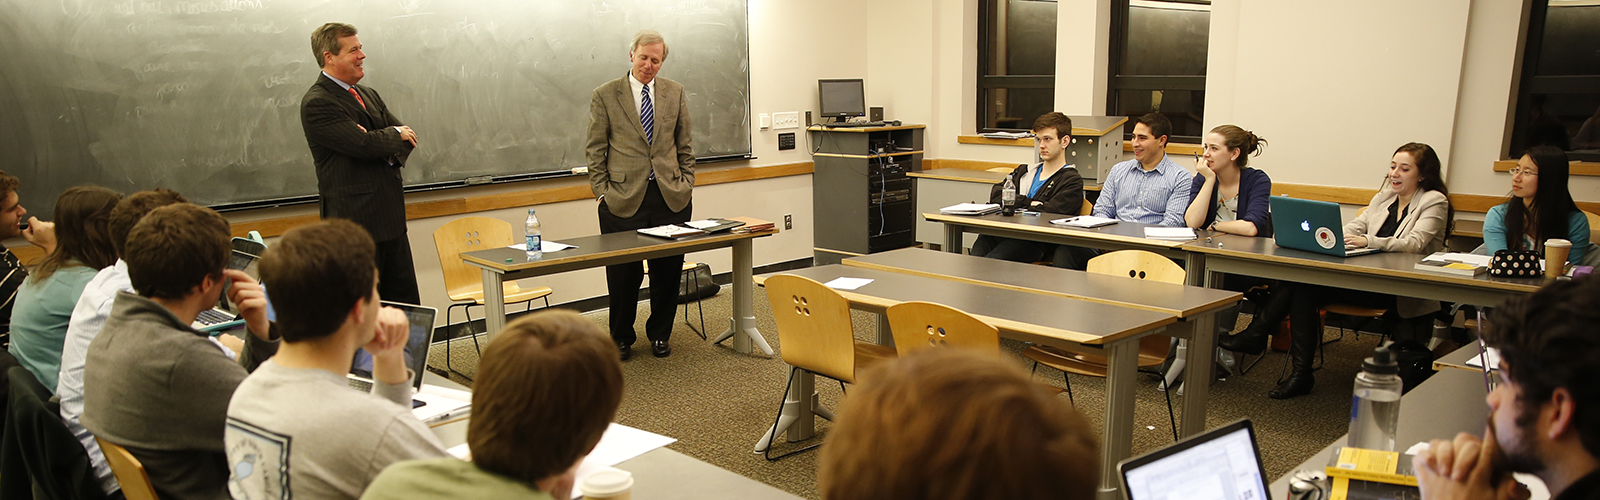 Professor Bill Purcell and former Nashville mayor Karl Dean speak to students sitting around tables in a public policy studies class